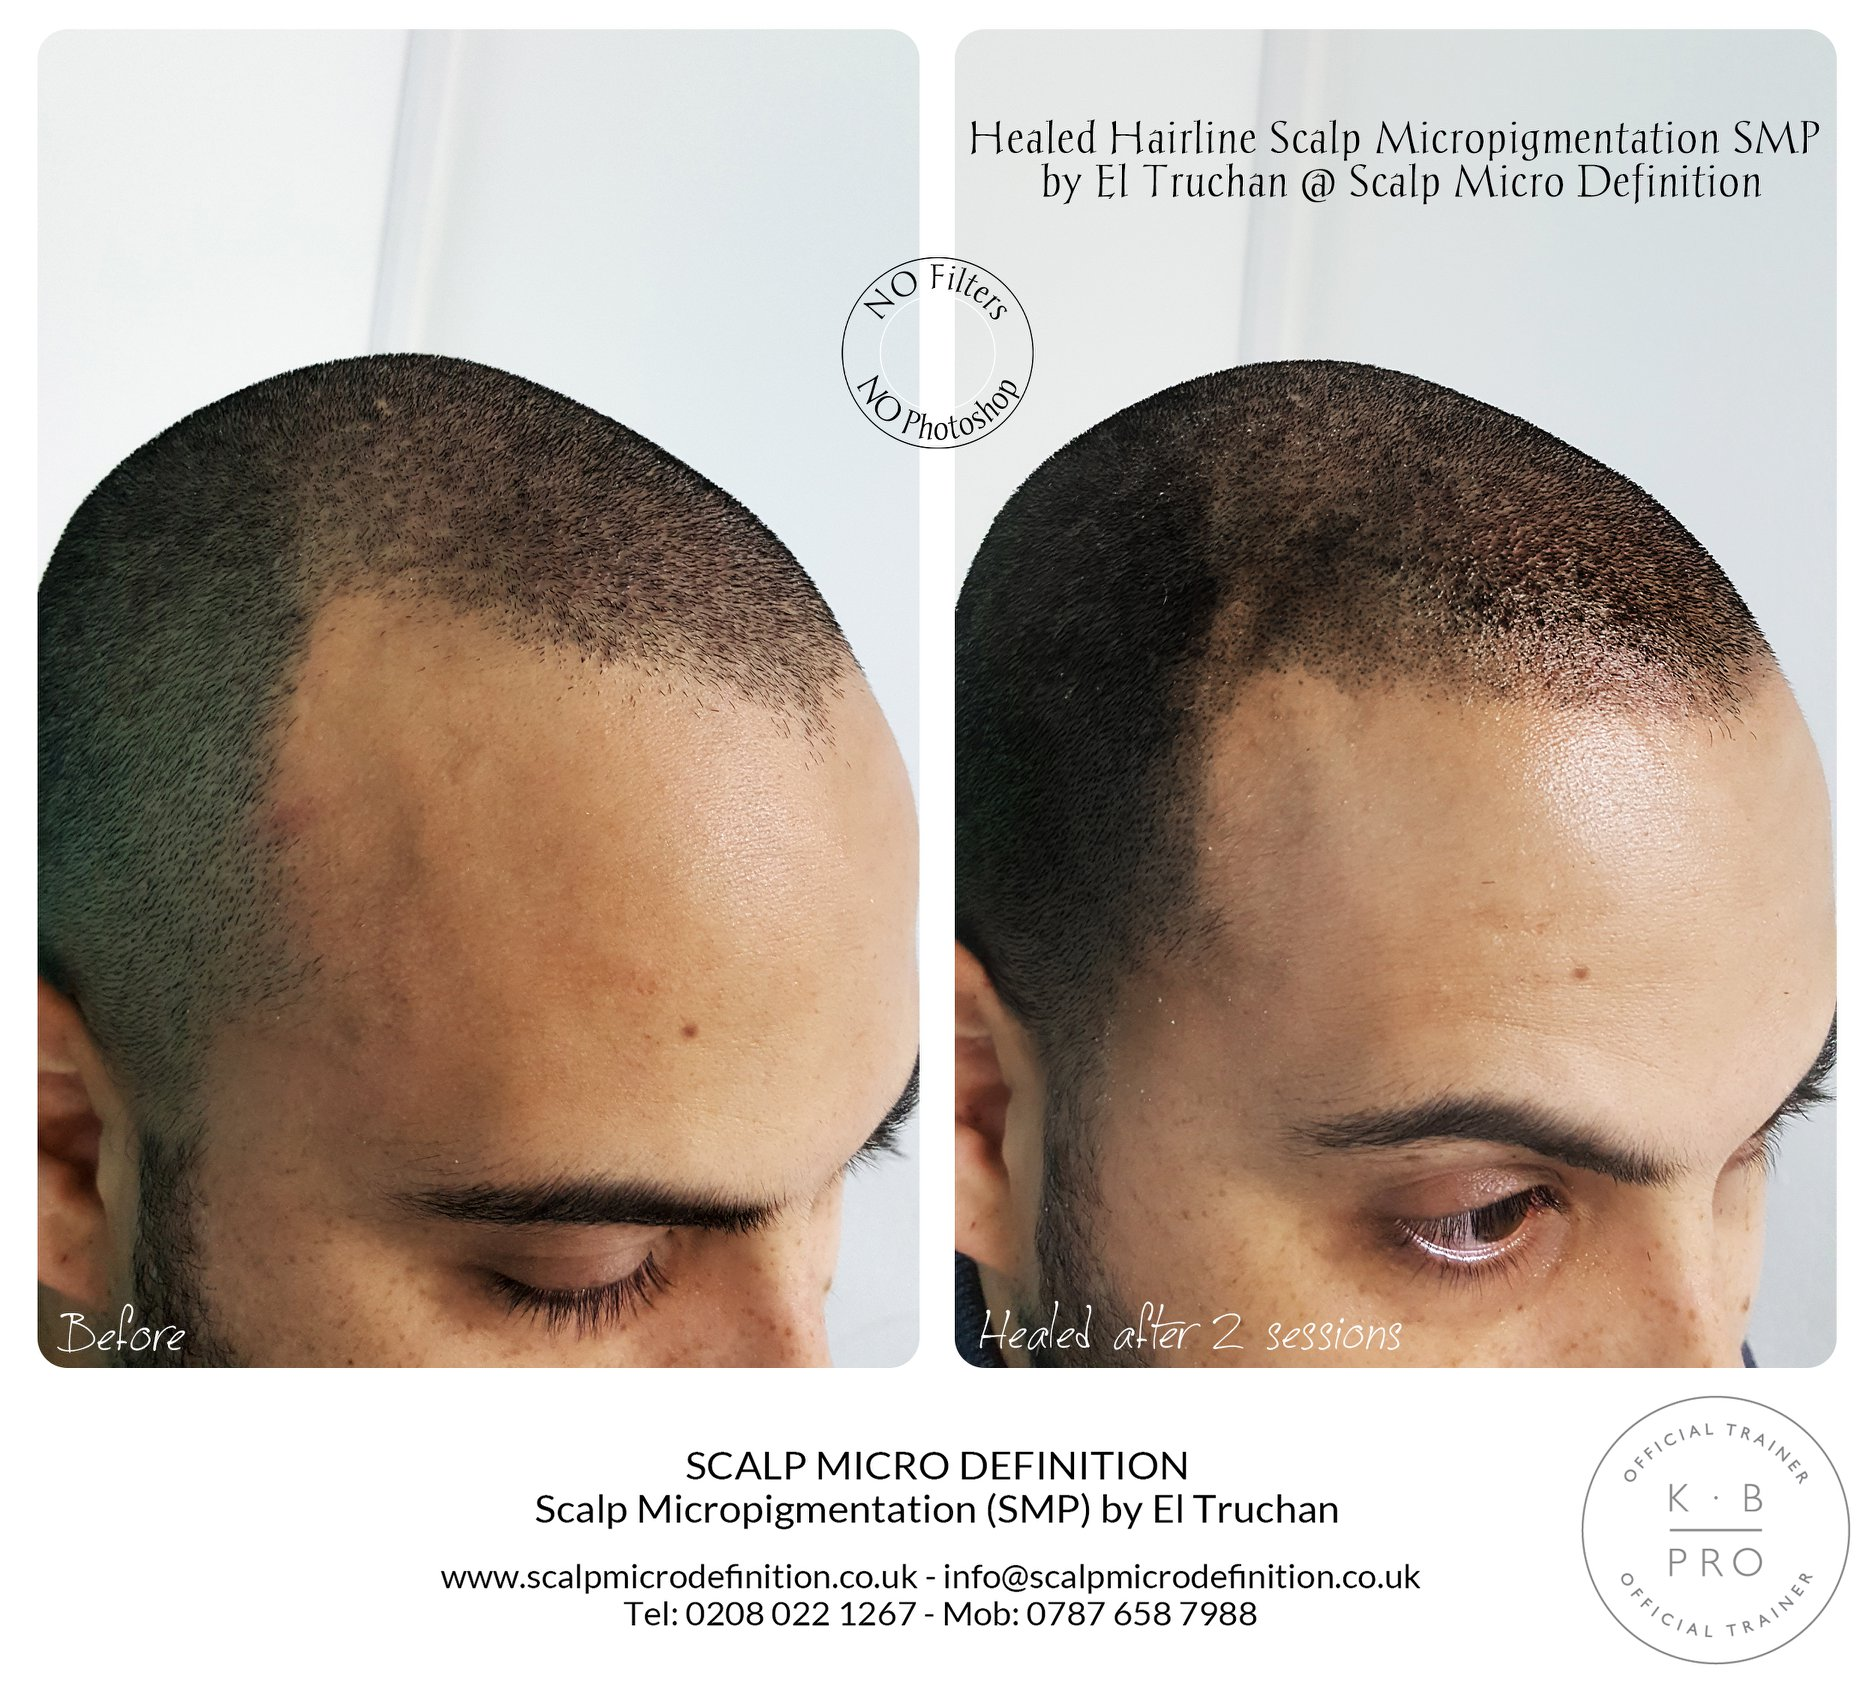 Healed Hairline Scalp Micropigmentation